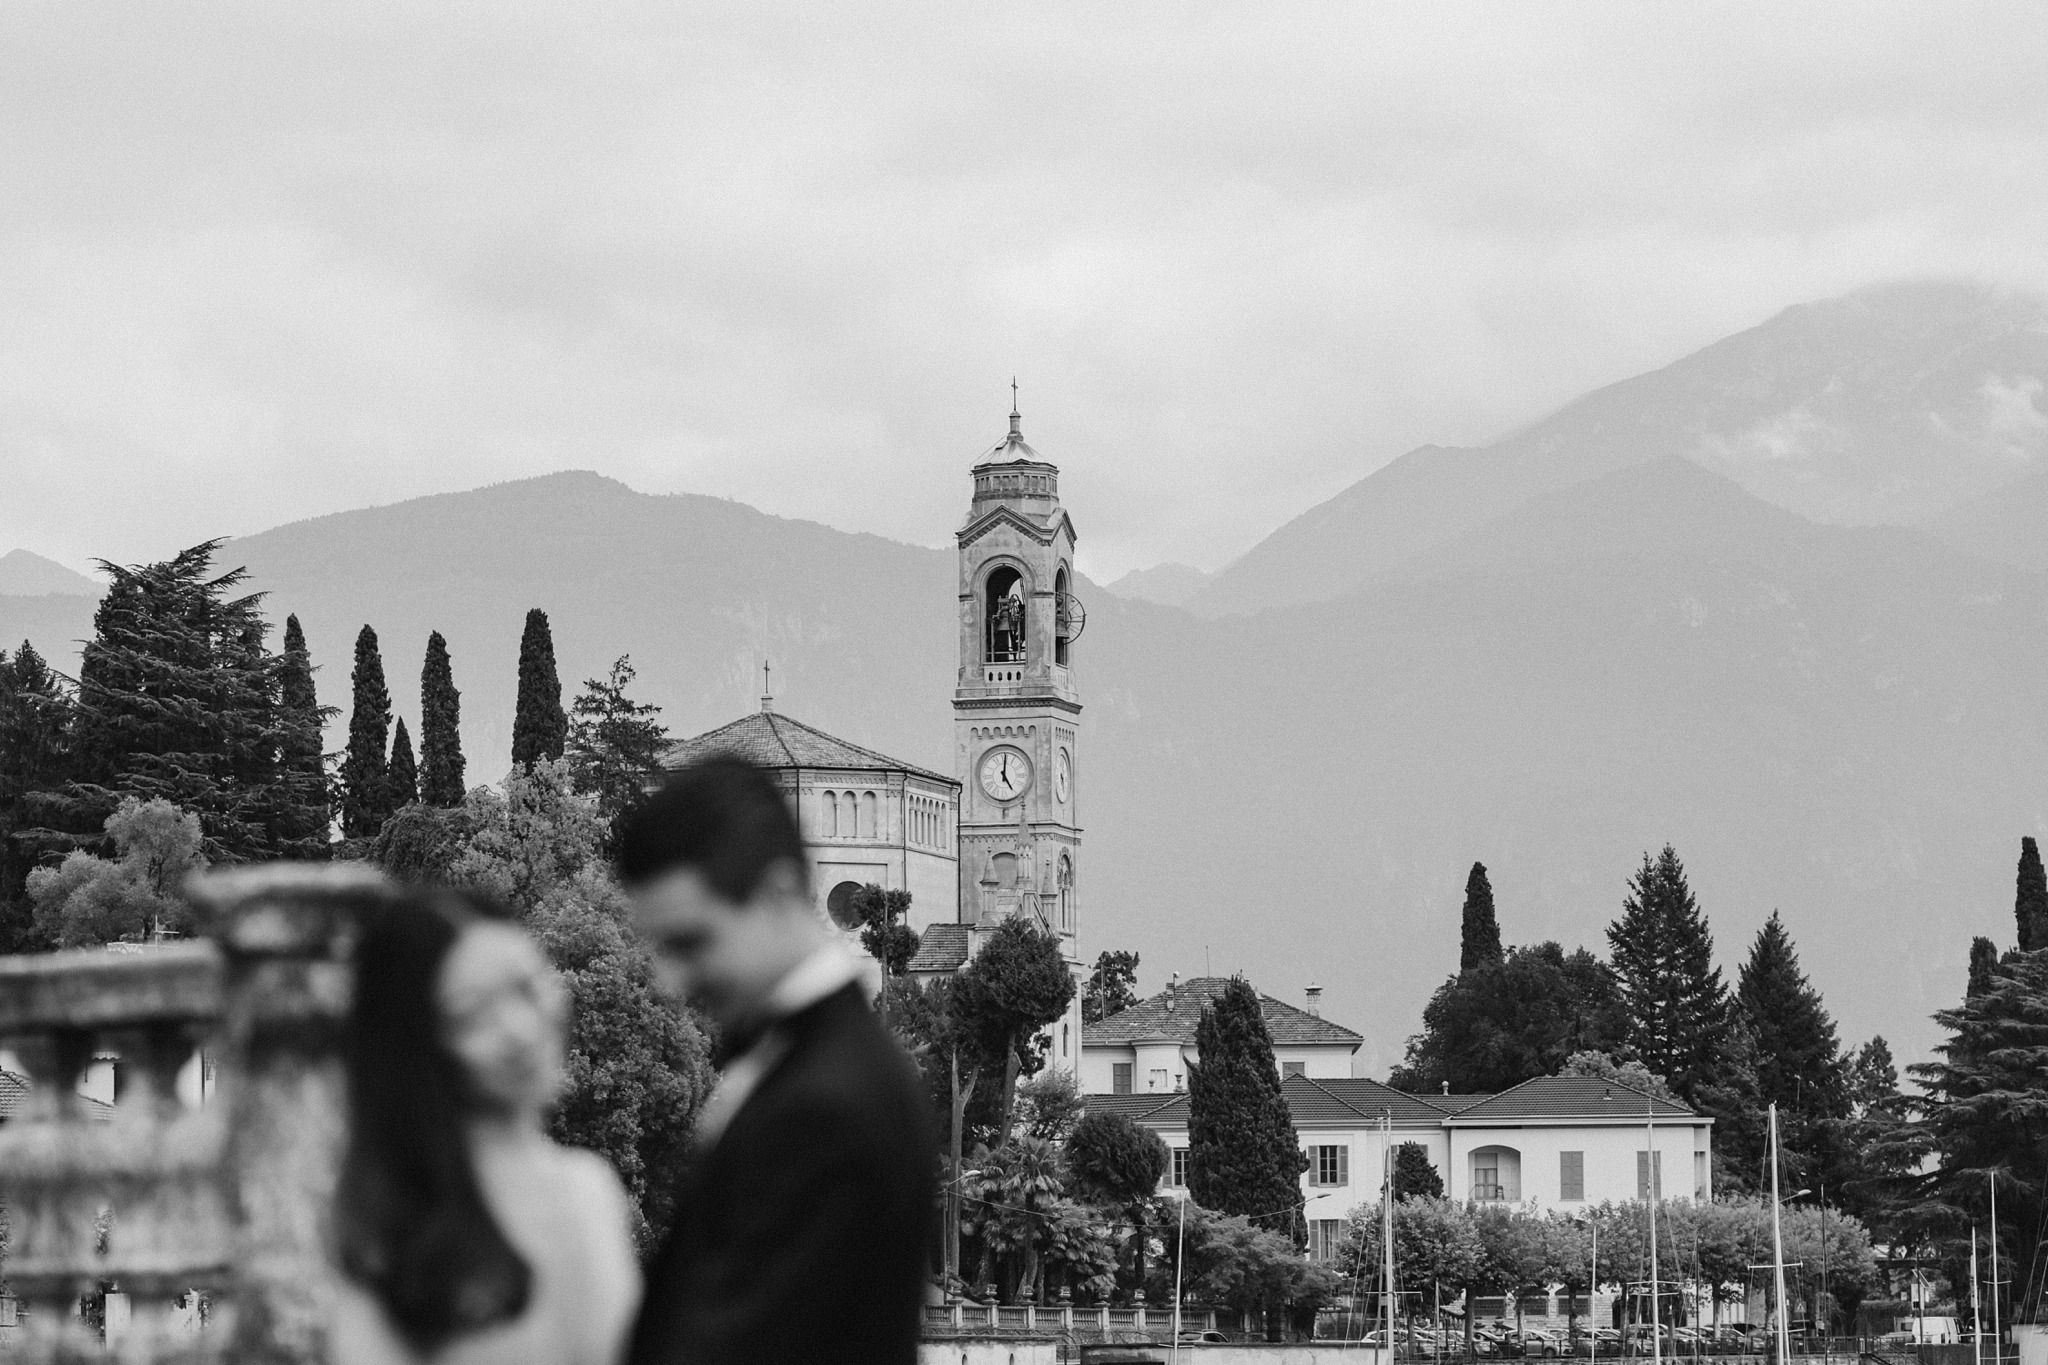 Lake Como Wedding and Pre Wedding Shoot with top photographer Sarah Falugo at Villa Sola Cabiati as seen on Vogue